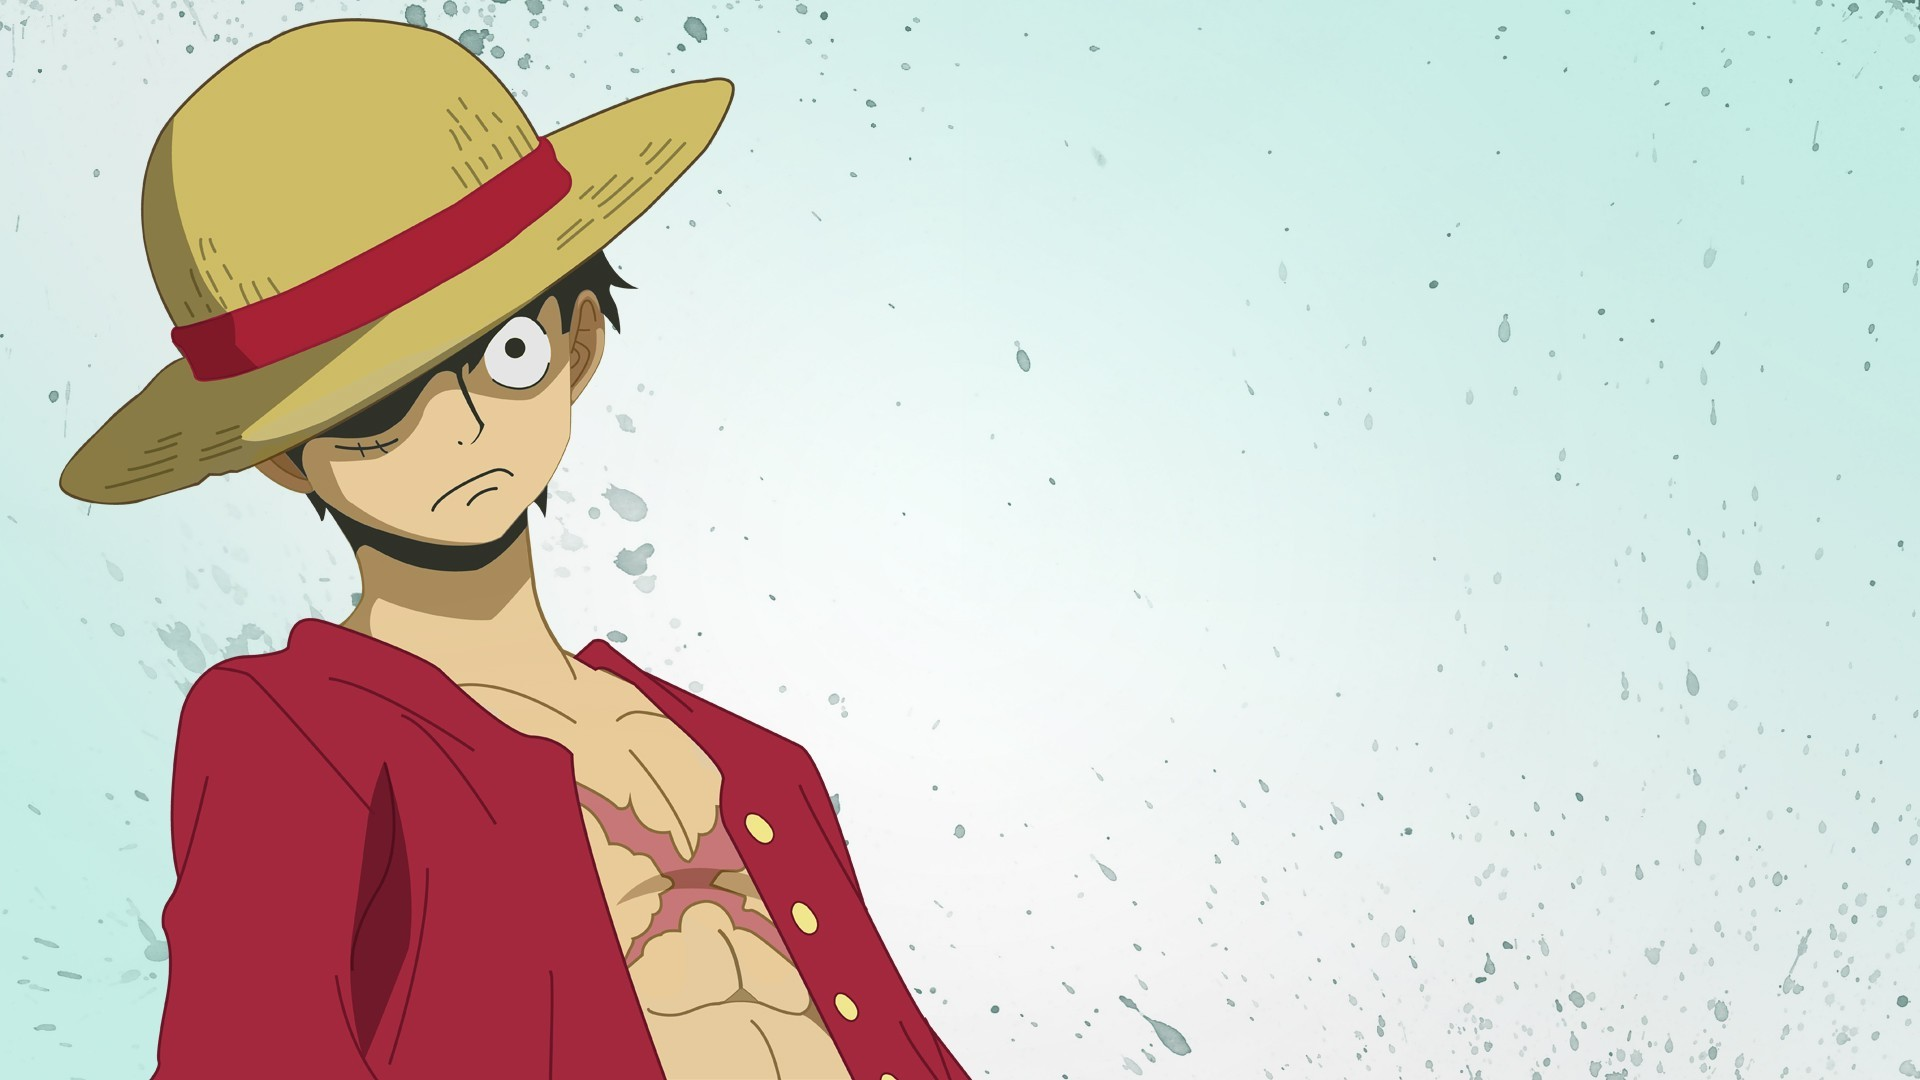 One Piece Luffy  Free Wallpaper  Animewp   One Piece Luffy Ace Anime Wallpaper  DreamLoveWallpapers 1920x1080